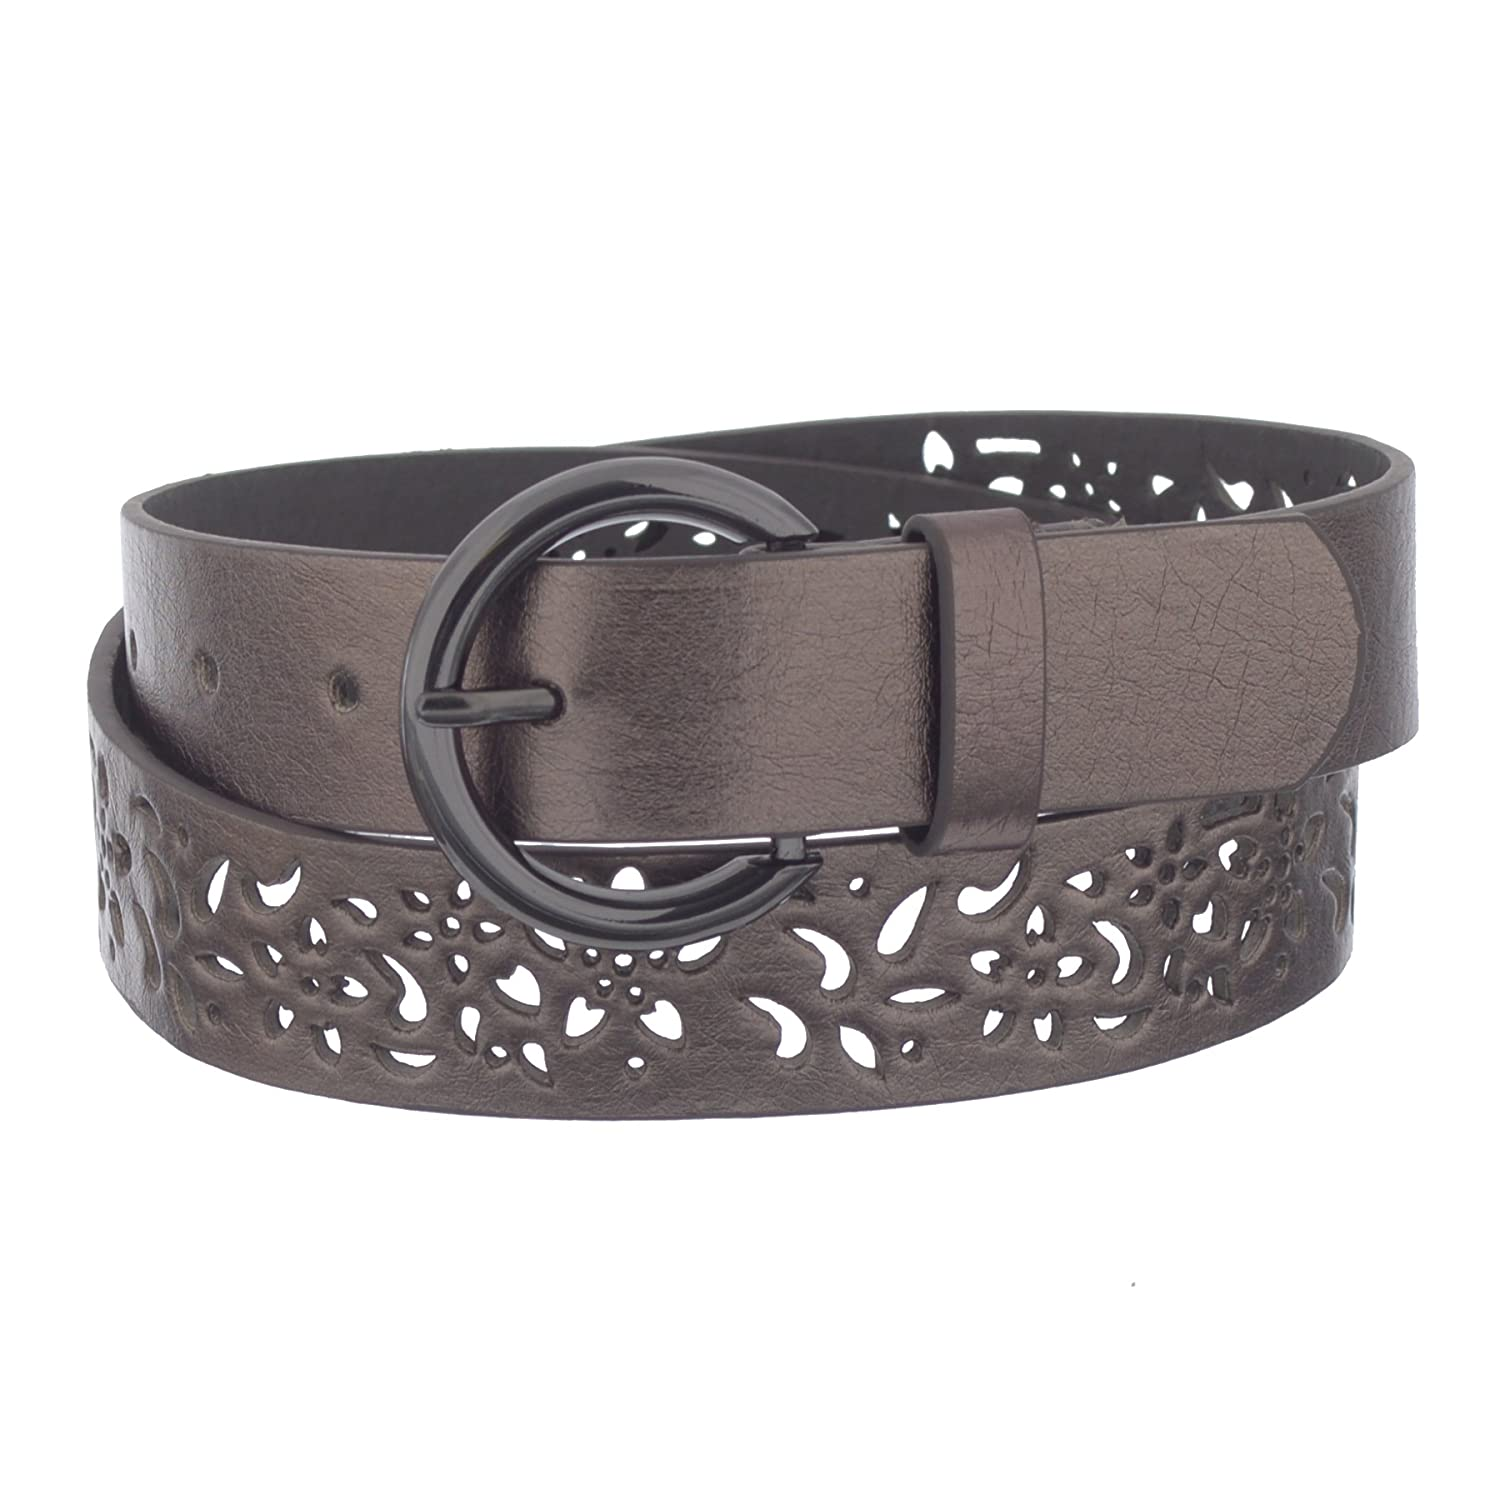 Xcessoire Girls 1 Fashion Leather Belt with Flower Punches LANG_B20096A